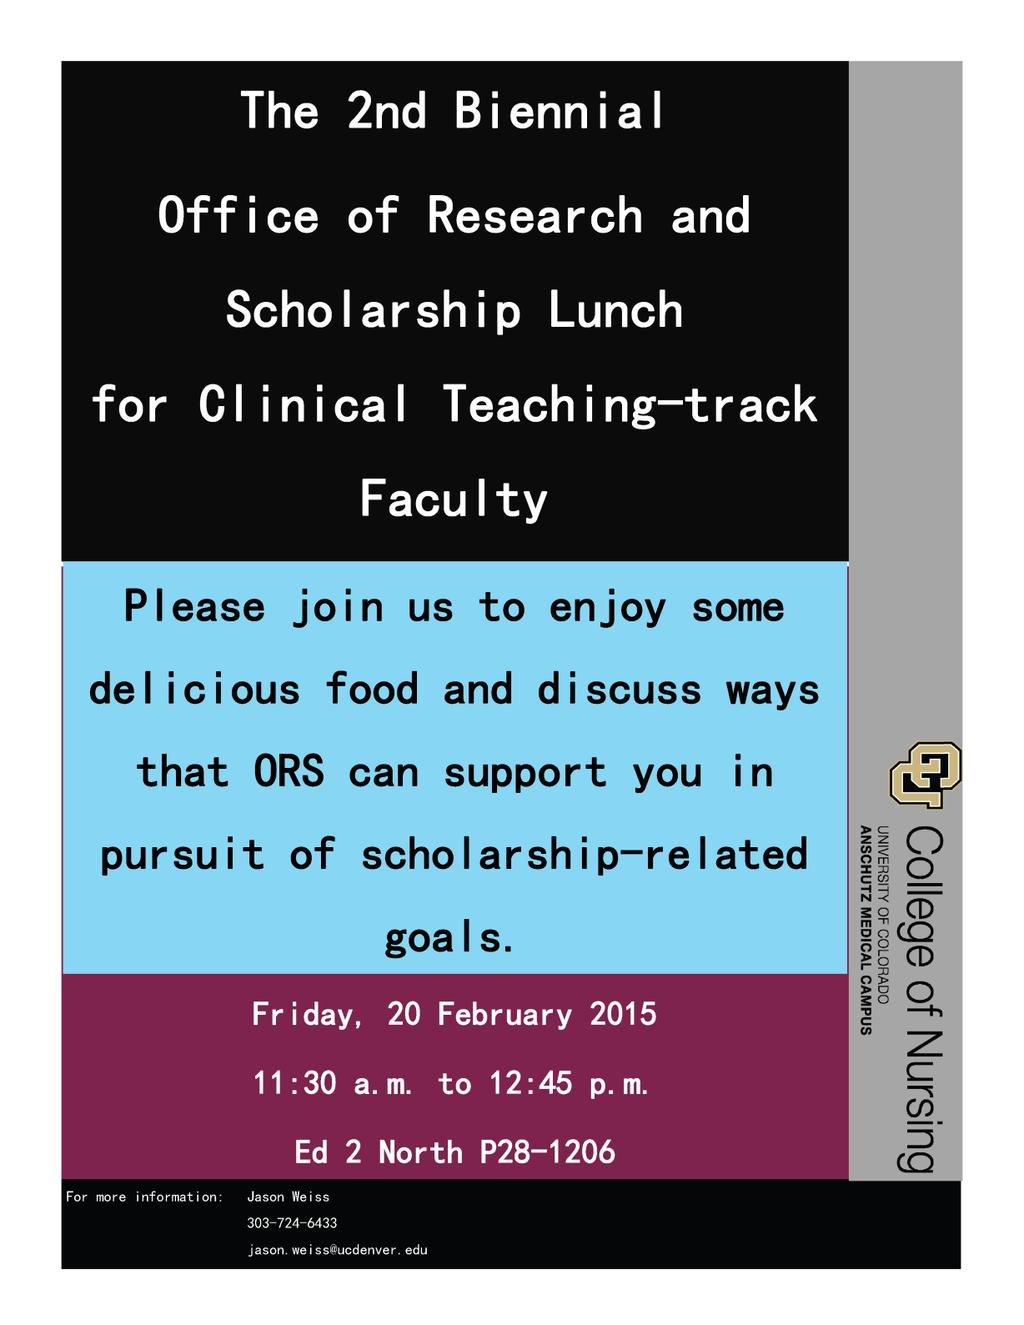 I. ORS OVERVIEW ORS ORS Lunch for Clinical/Teaching-track Faculty February 20, 2015 Building further on the 2014-2015 incorporation of clinical/ teaching-track faculty into the CON s research